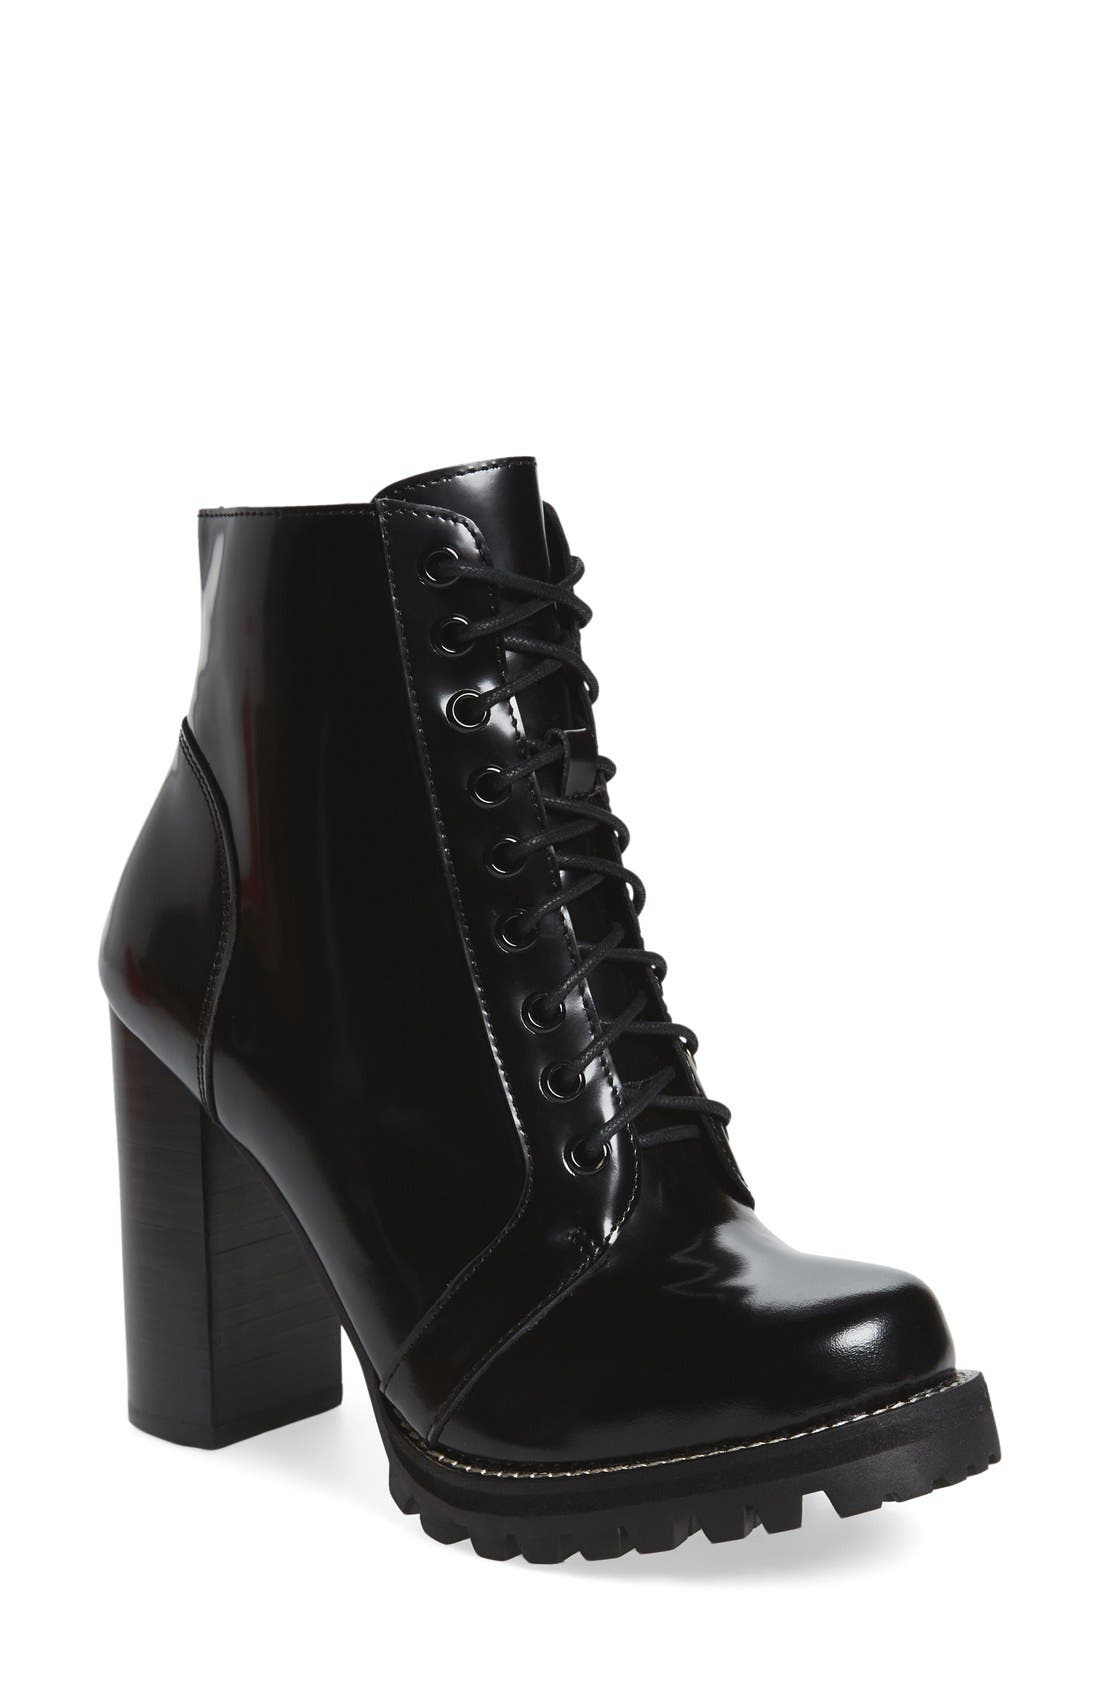 'Legion' high heel boot, main, color, black box leather